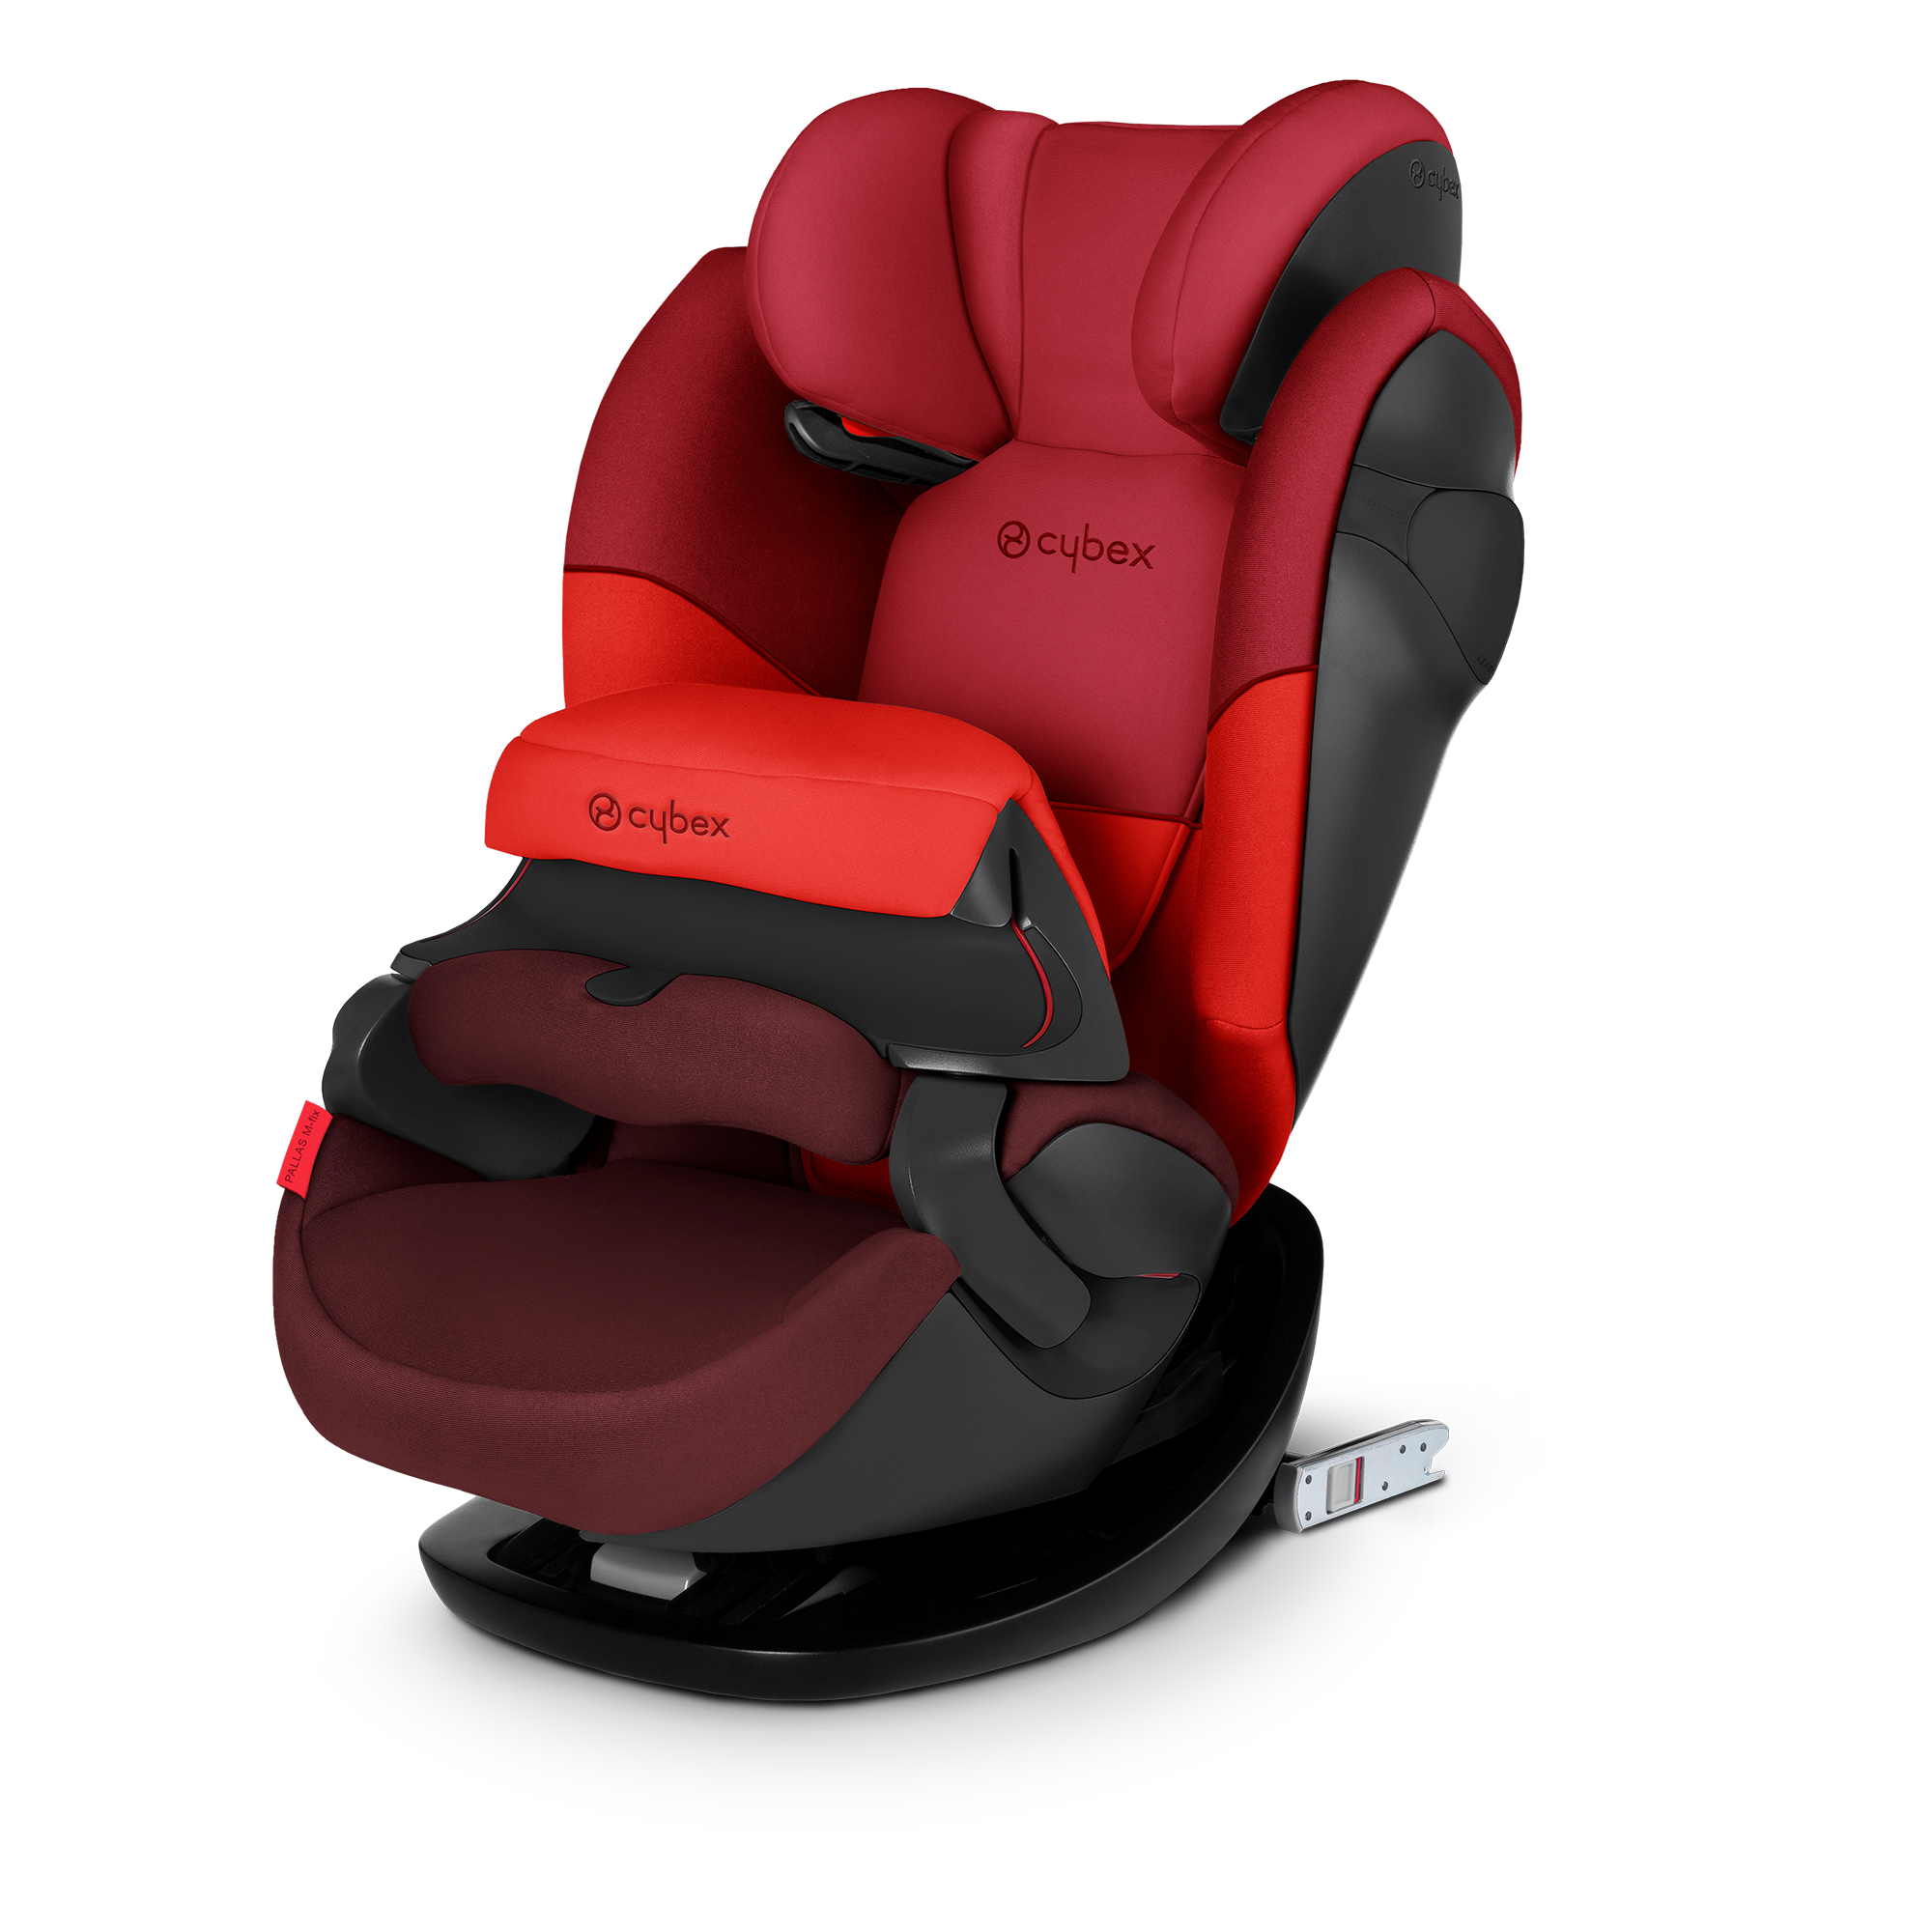 Child Car Safety Seats Cybex 519001089 for girls and boys Baby seat Kids Children chair autocradle booster